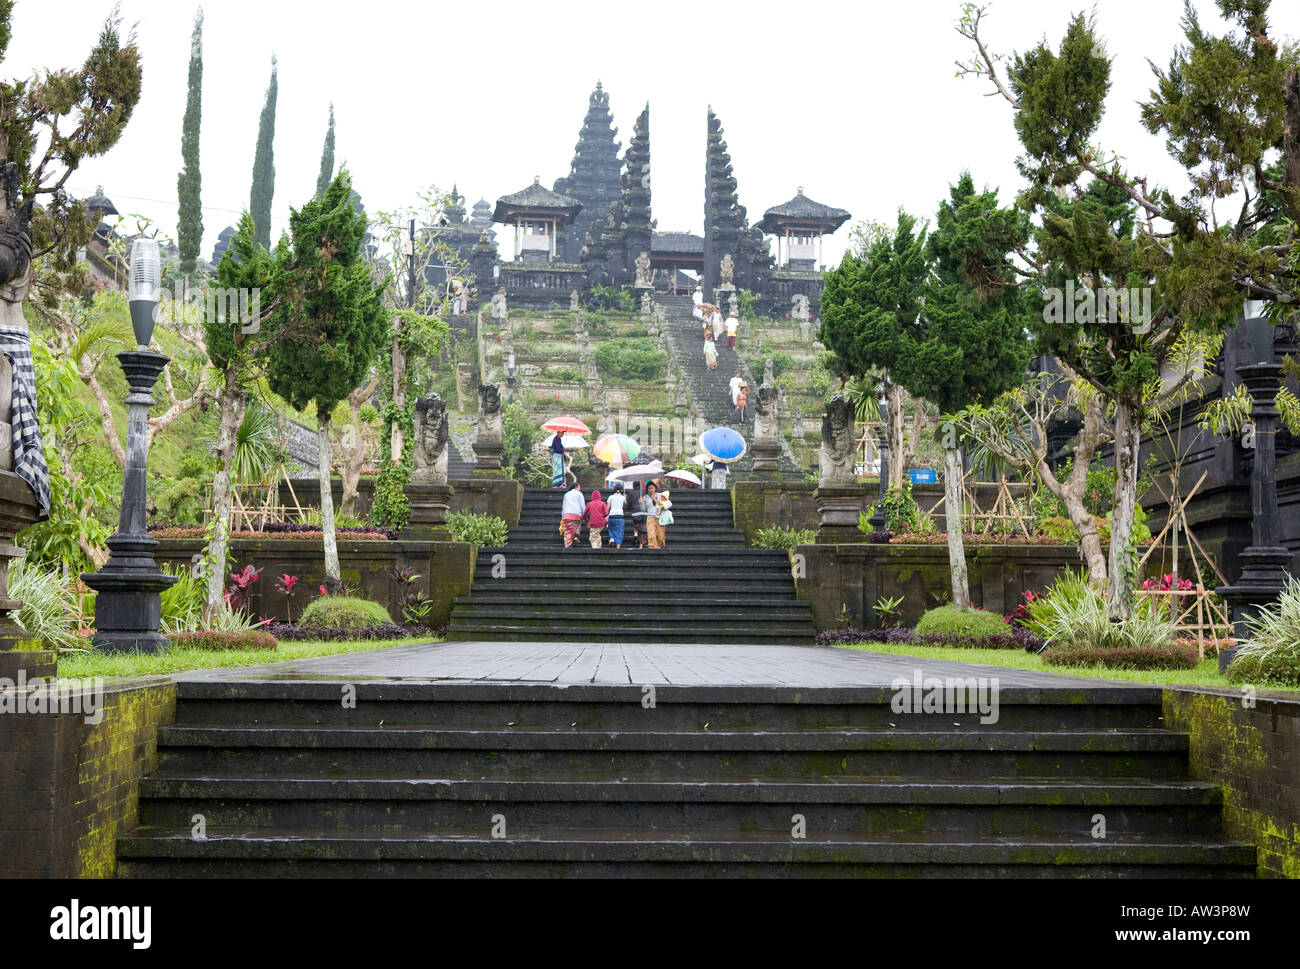 Tourists With Umbrellas Climbing The Steps Into The Pura Besakih Temple Bali Indonesia - Stock Image